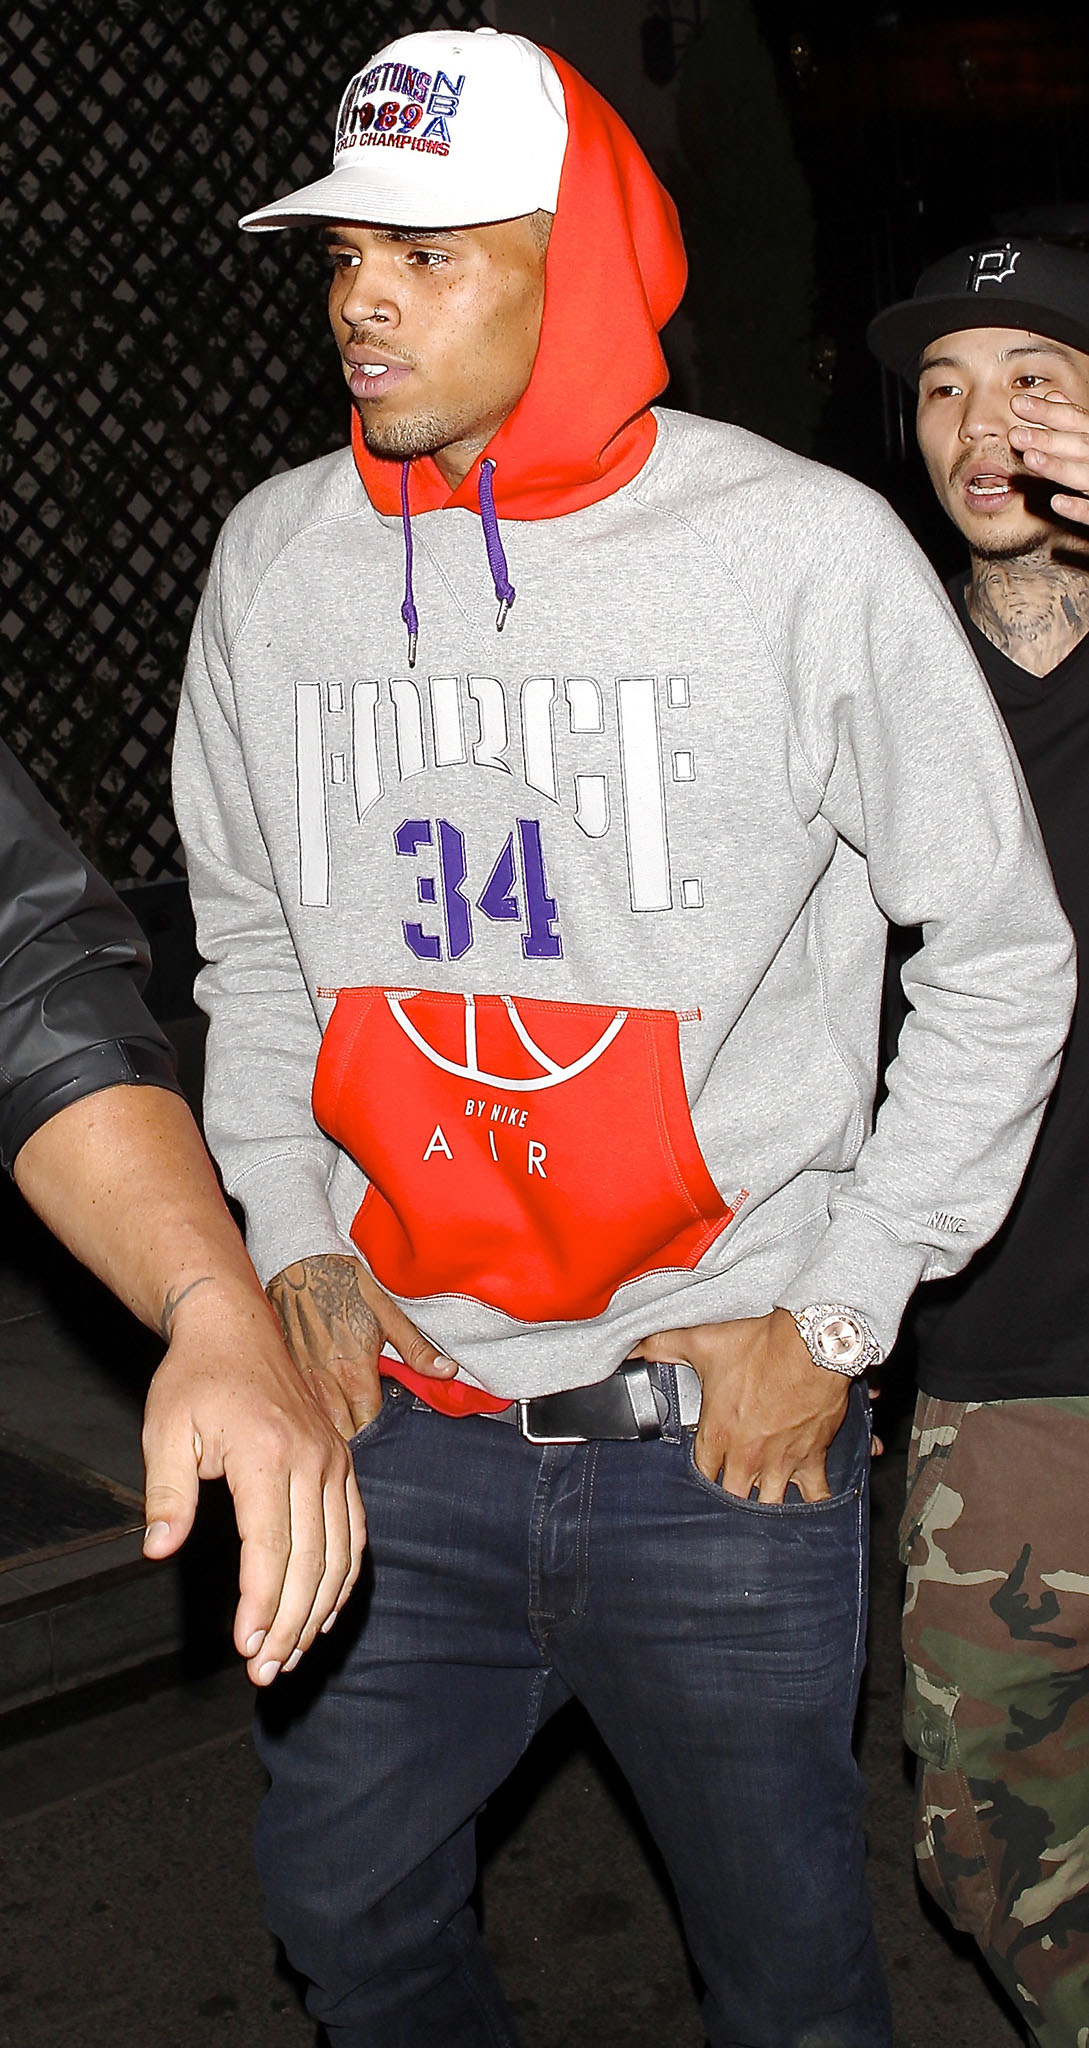 Chris Brown leaves a club on Monday, August 5, 2013 (Splash News)